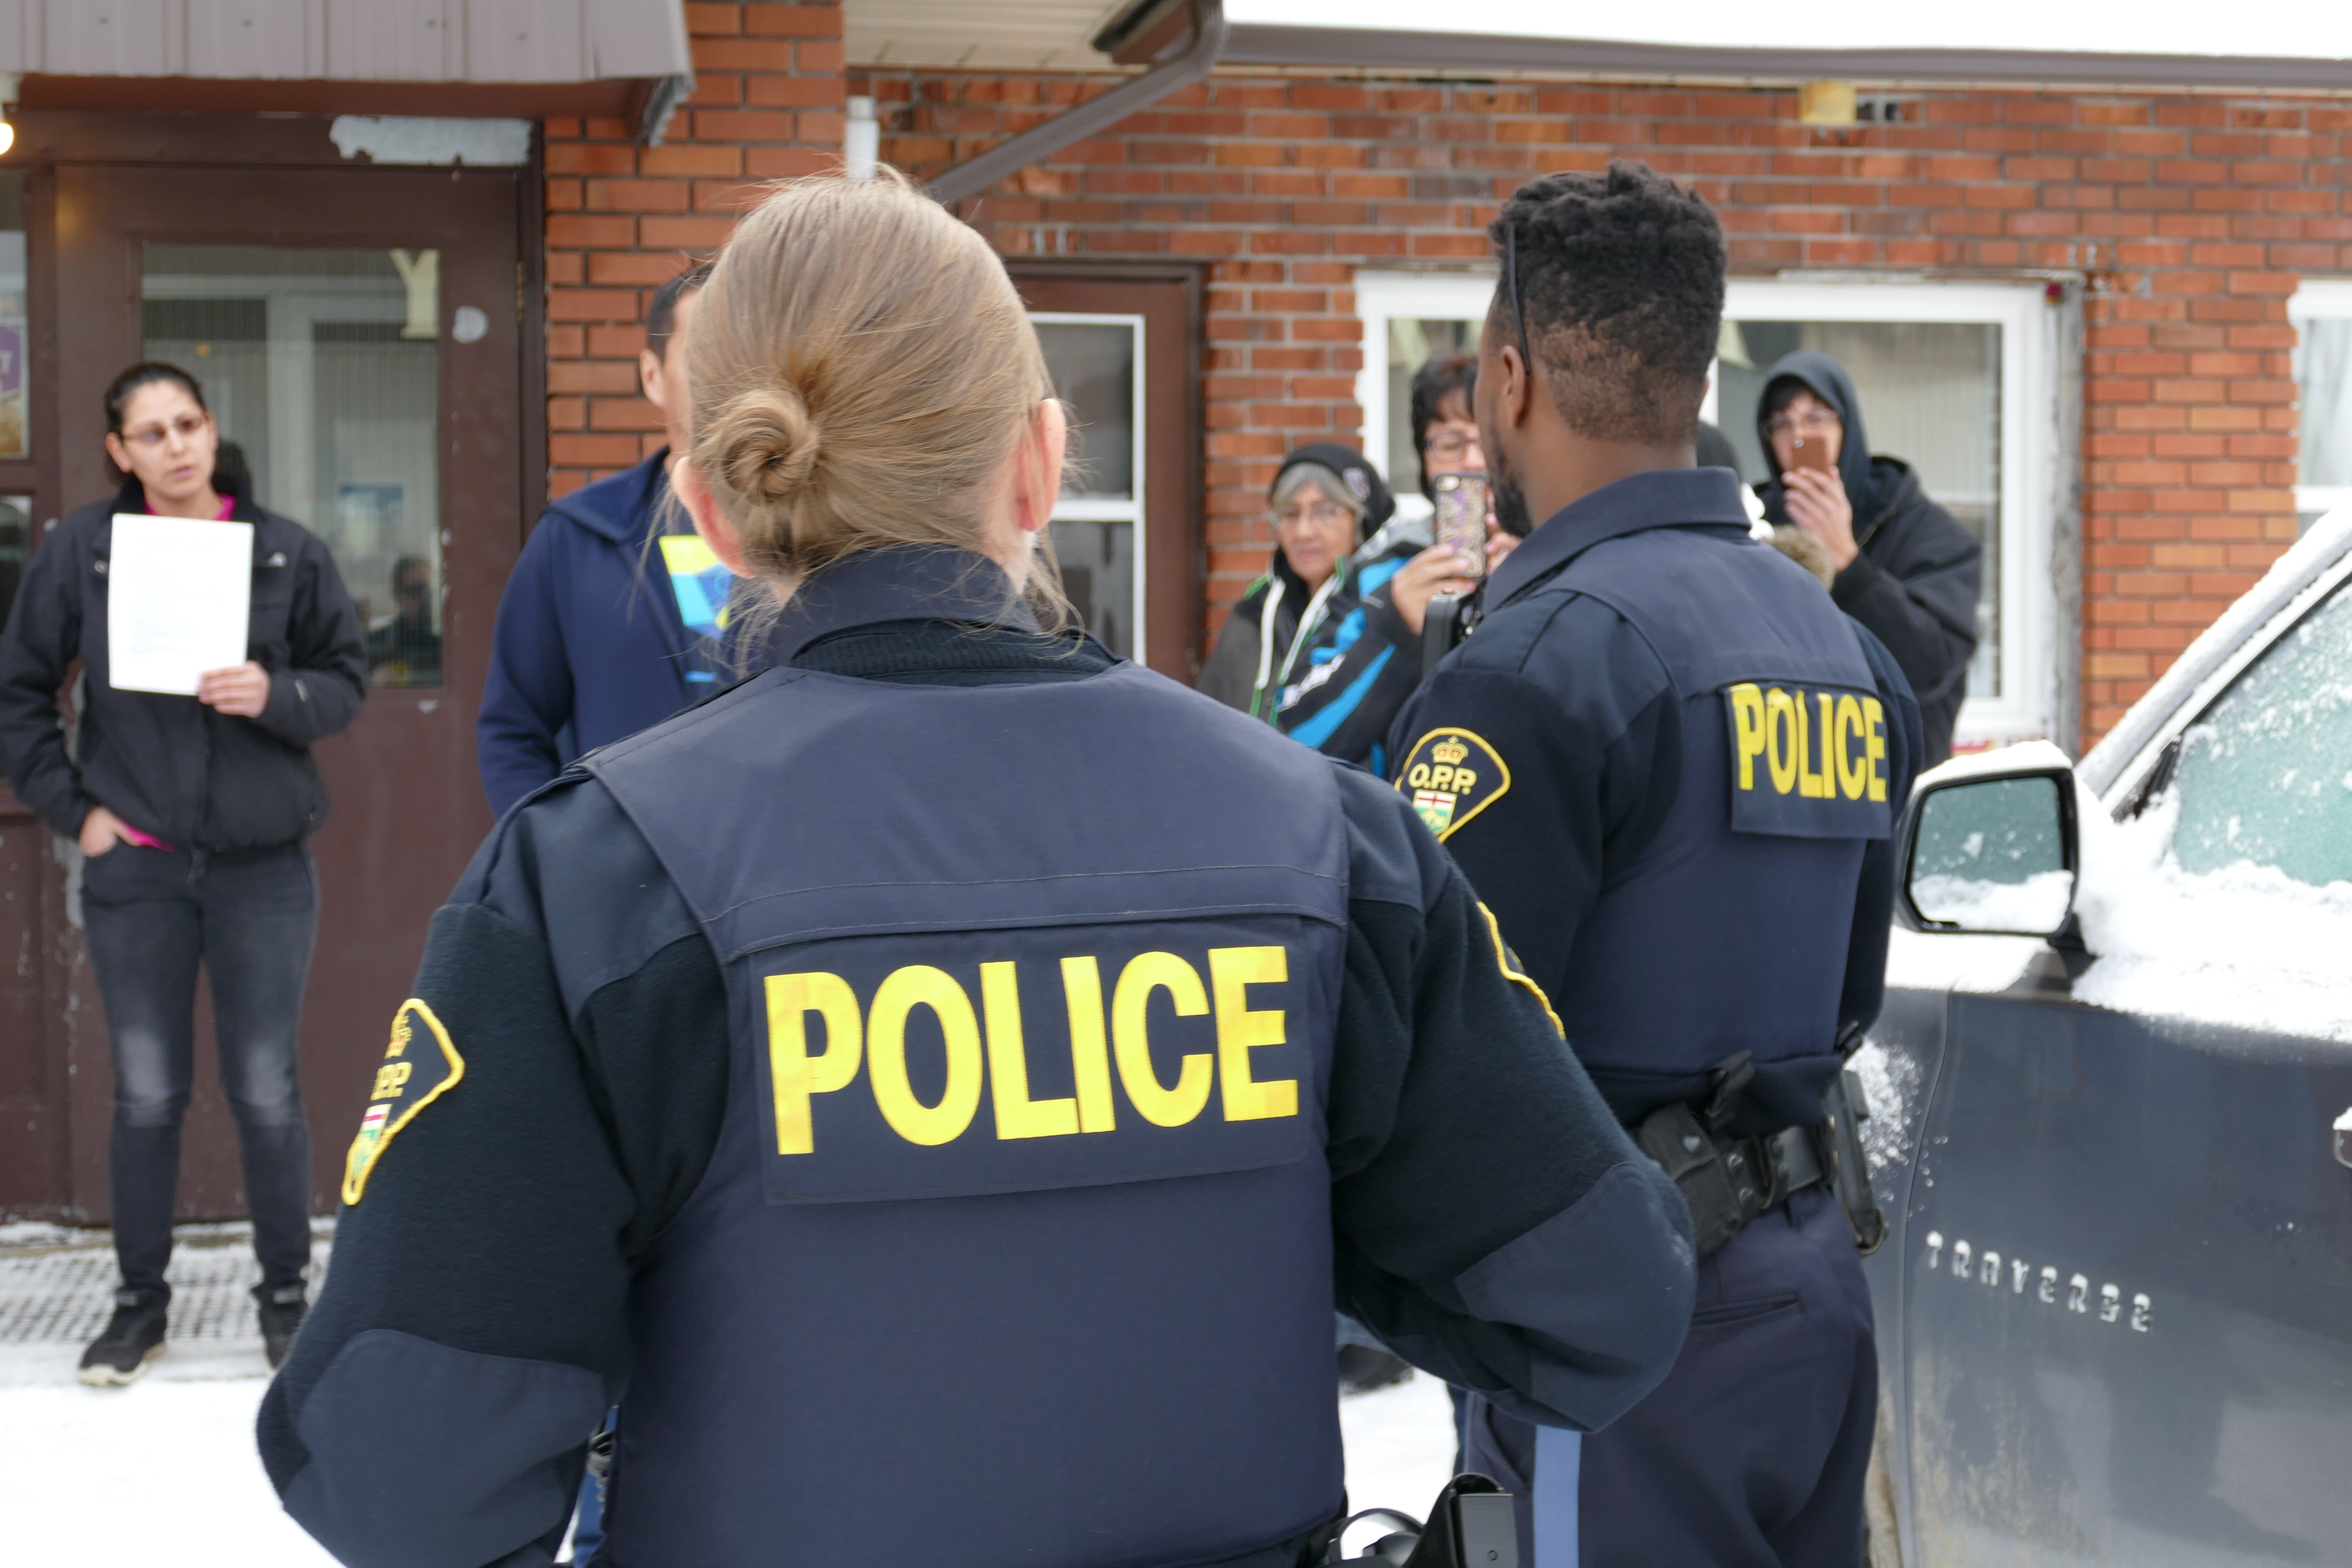 The Ontario Provincial Police showed up at the meeting. (Jorge Barrera/CBC)